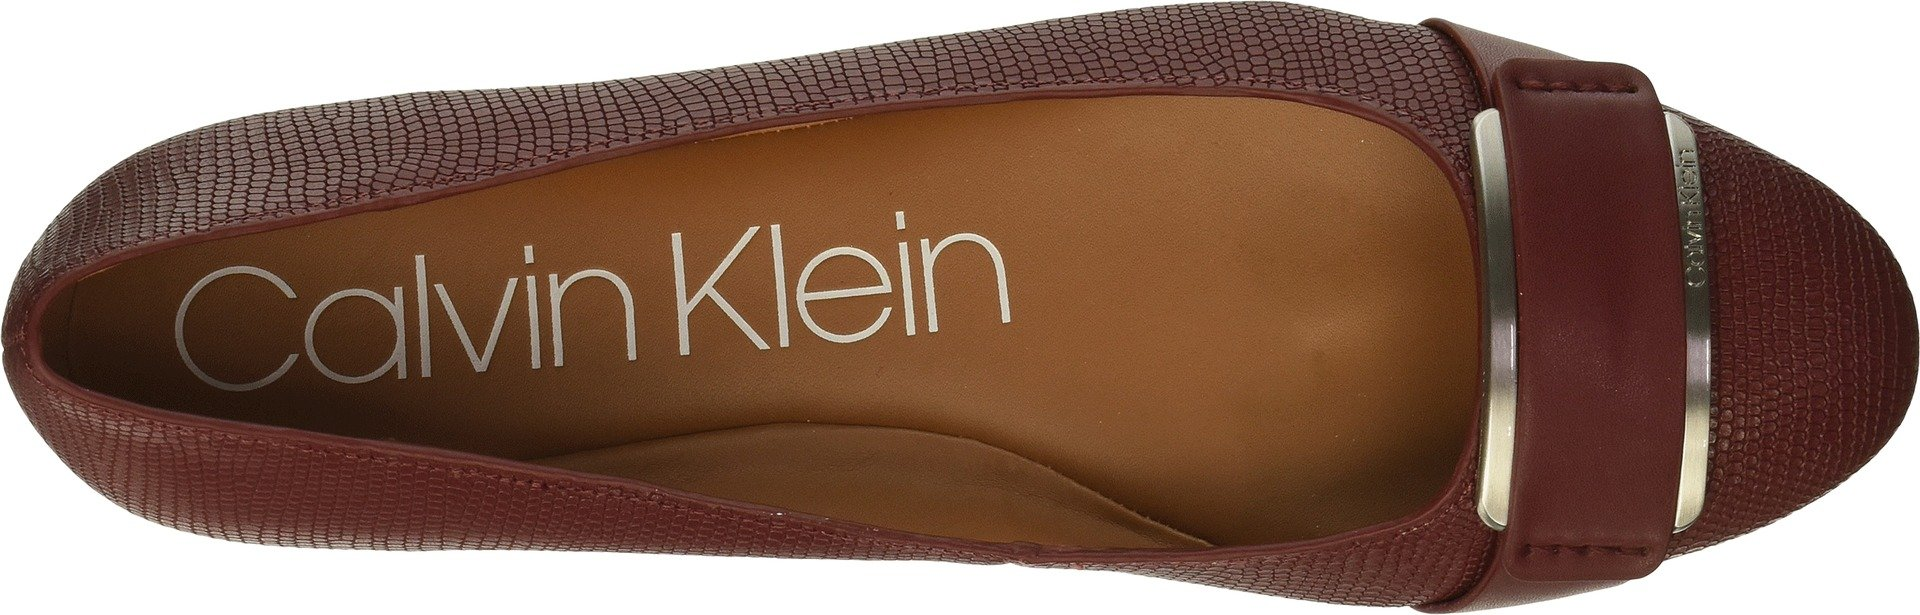 Calvin-Klein-Women-039-s-Oneta-Ballet-Flat-Black-5-M-Choose-SZ-color thumbnail 10